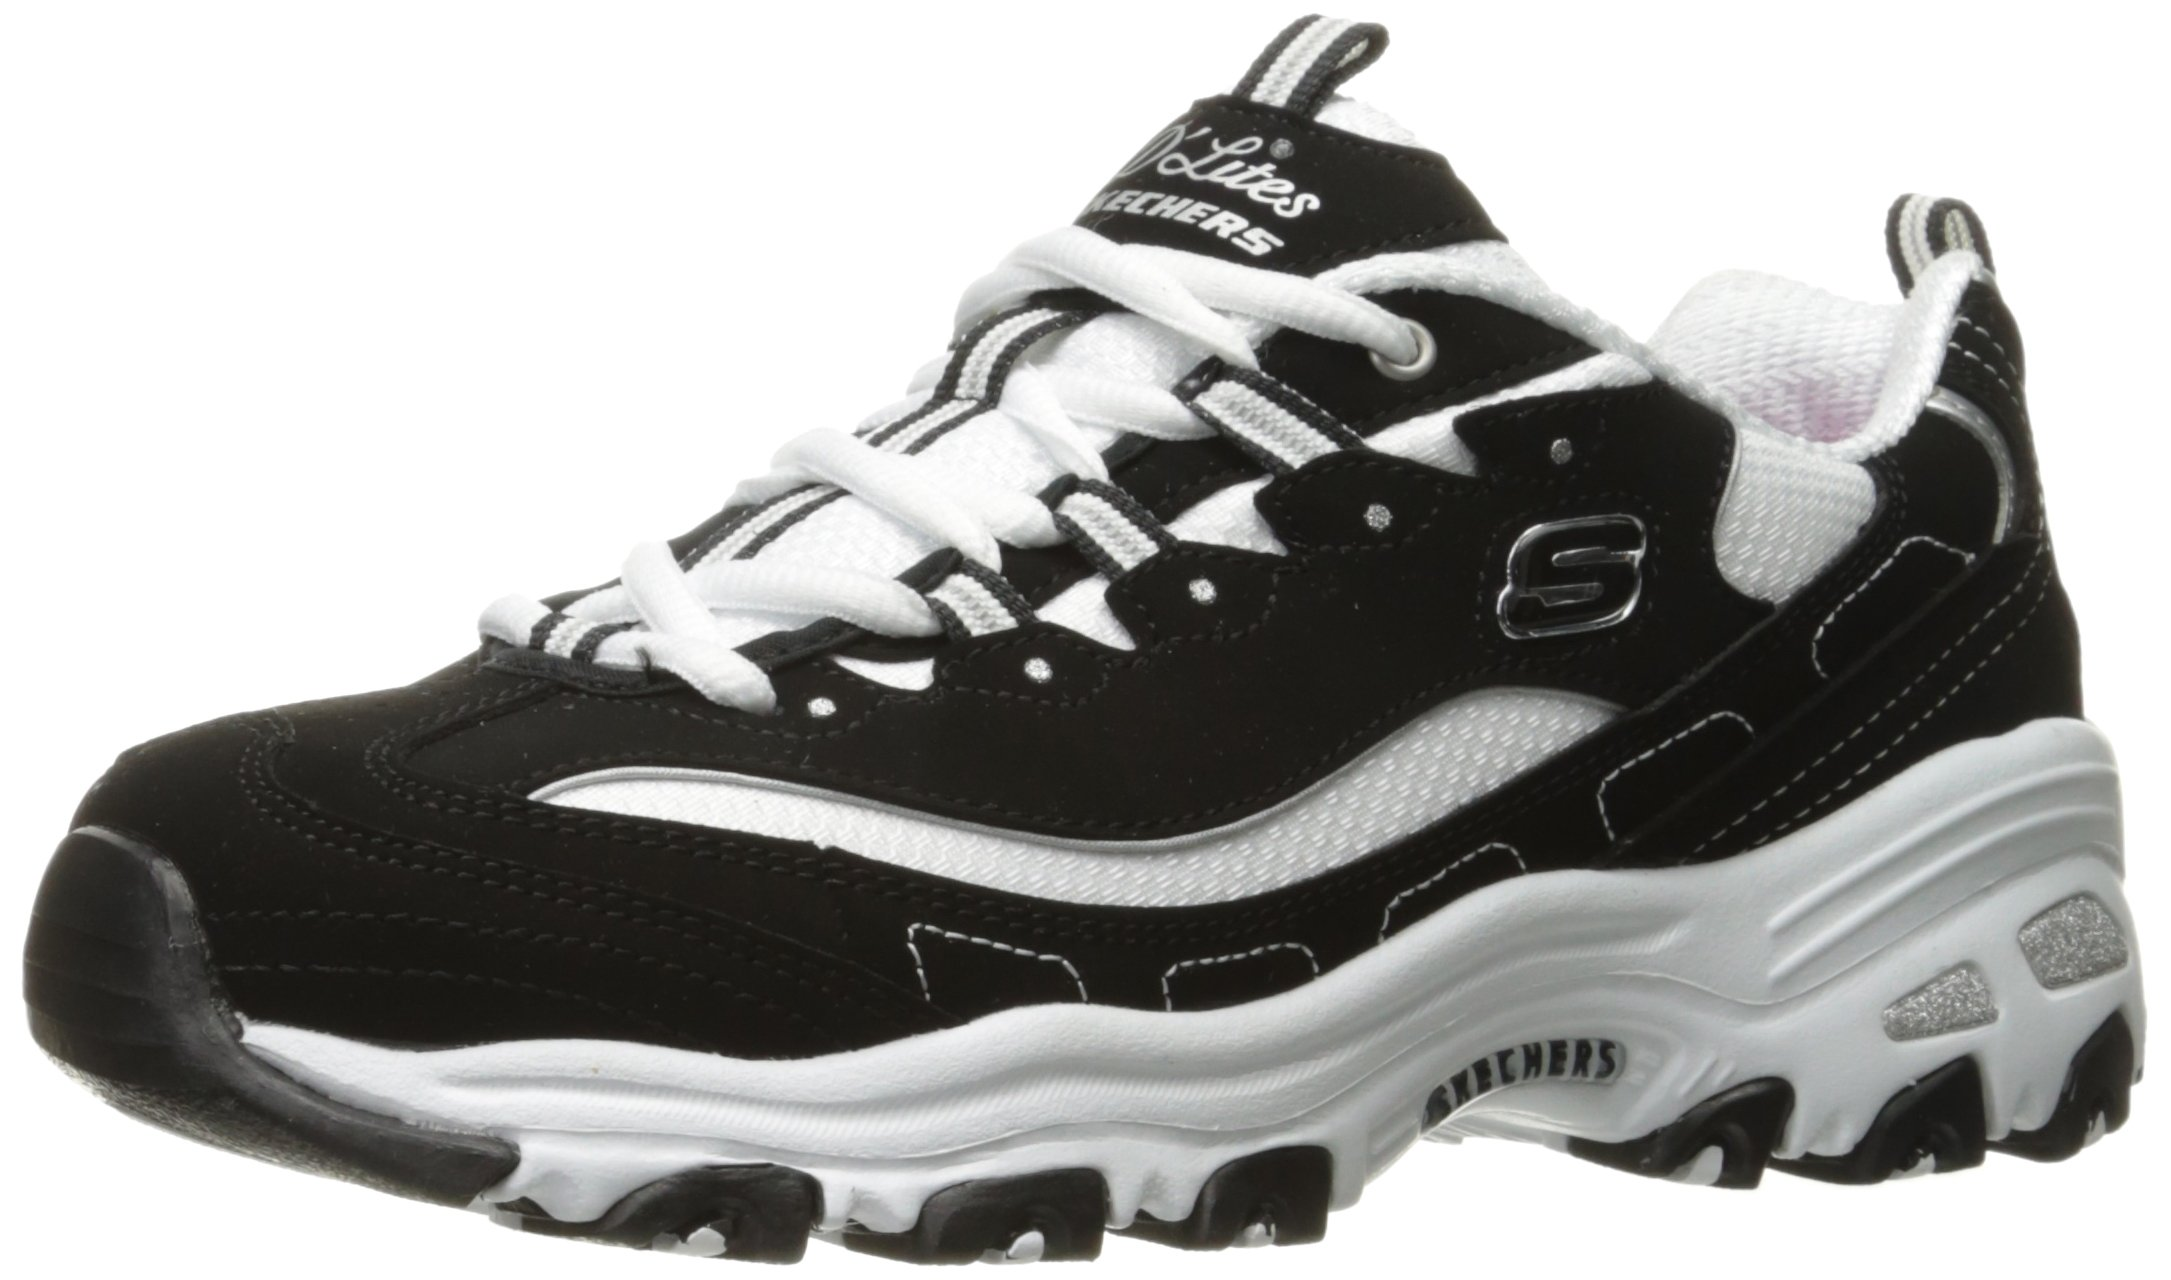 Skechers Sport Women's D'Lites Memory Foam Lace-up Sneaker,Black/White,9 W US